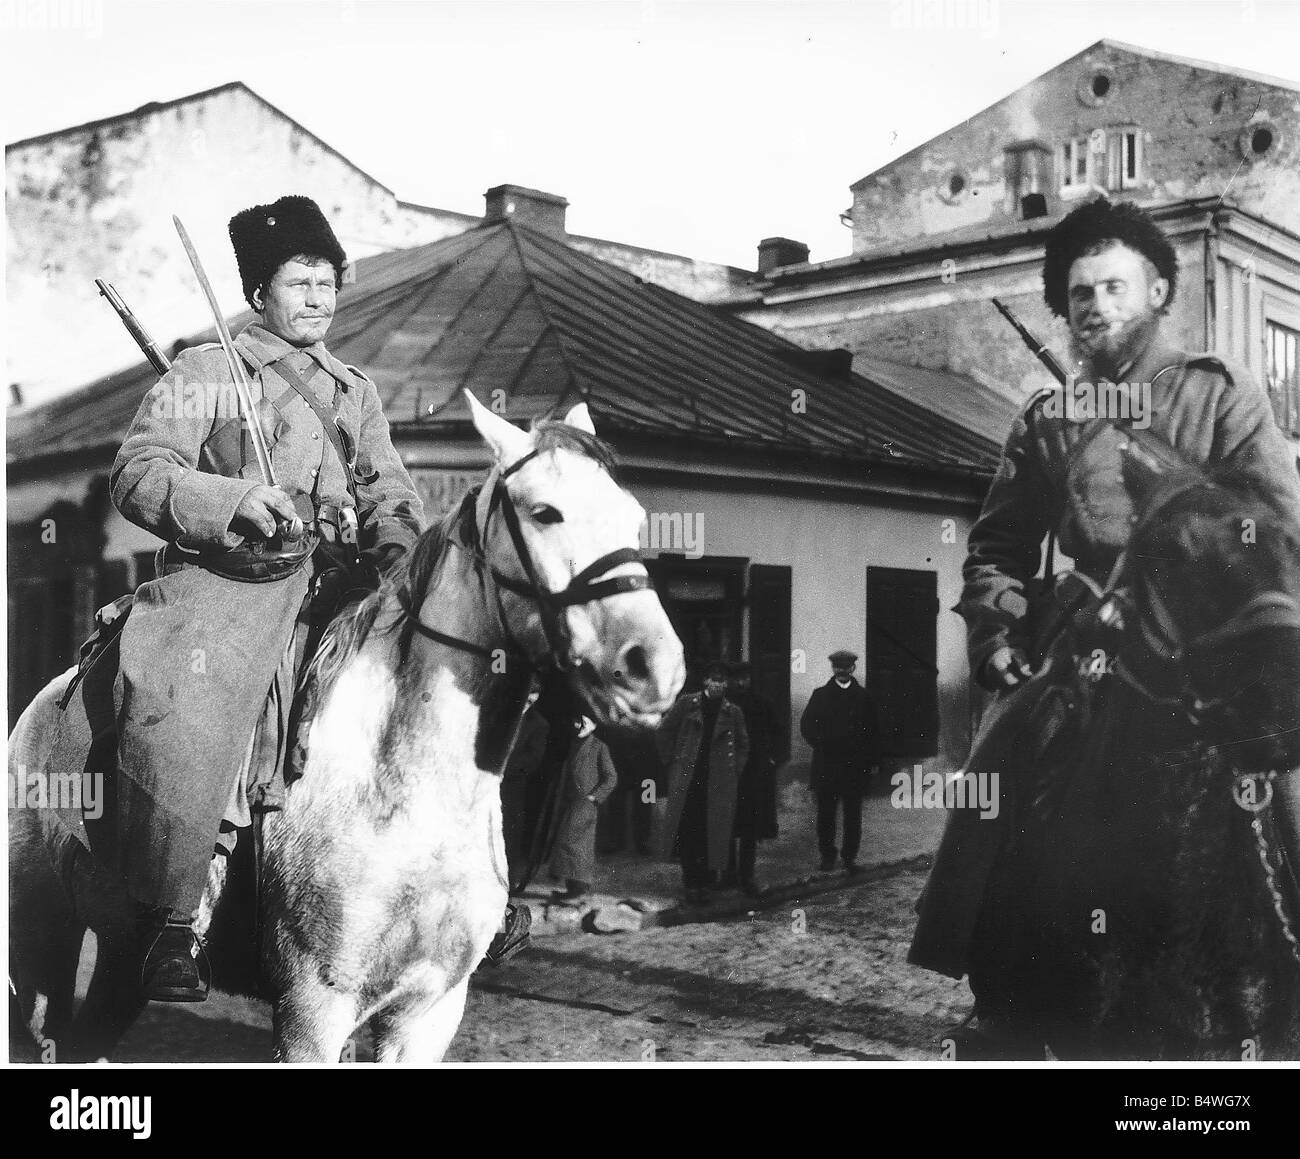 Cossacks in Kielce DM 1383 Box 3 Date The feared Russian Cossacks whose reputation arrived long before they did - Stock Image